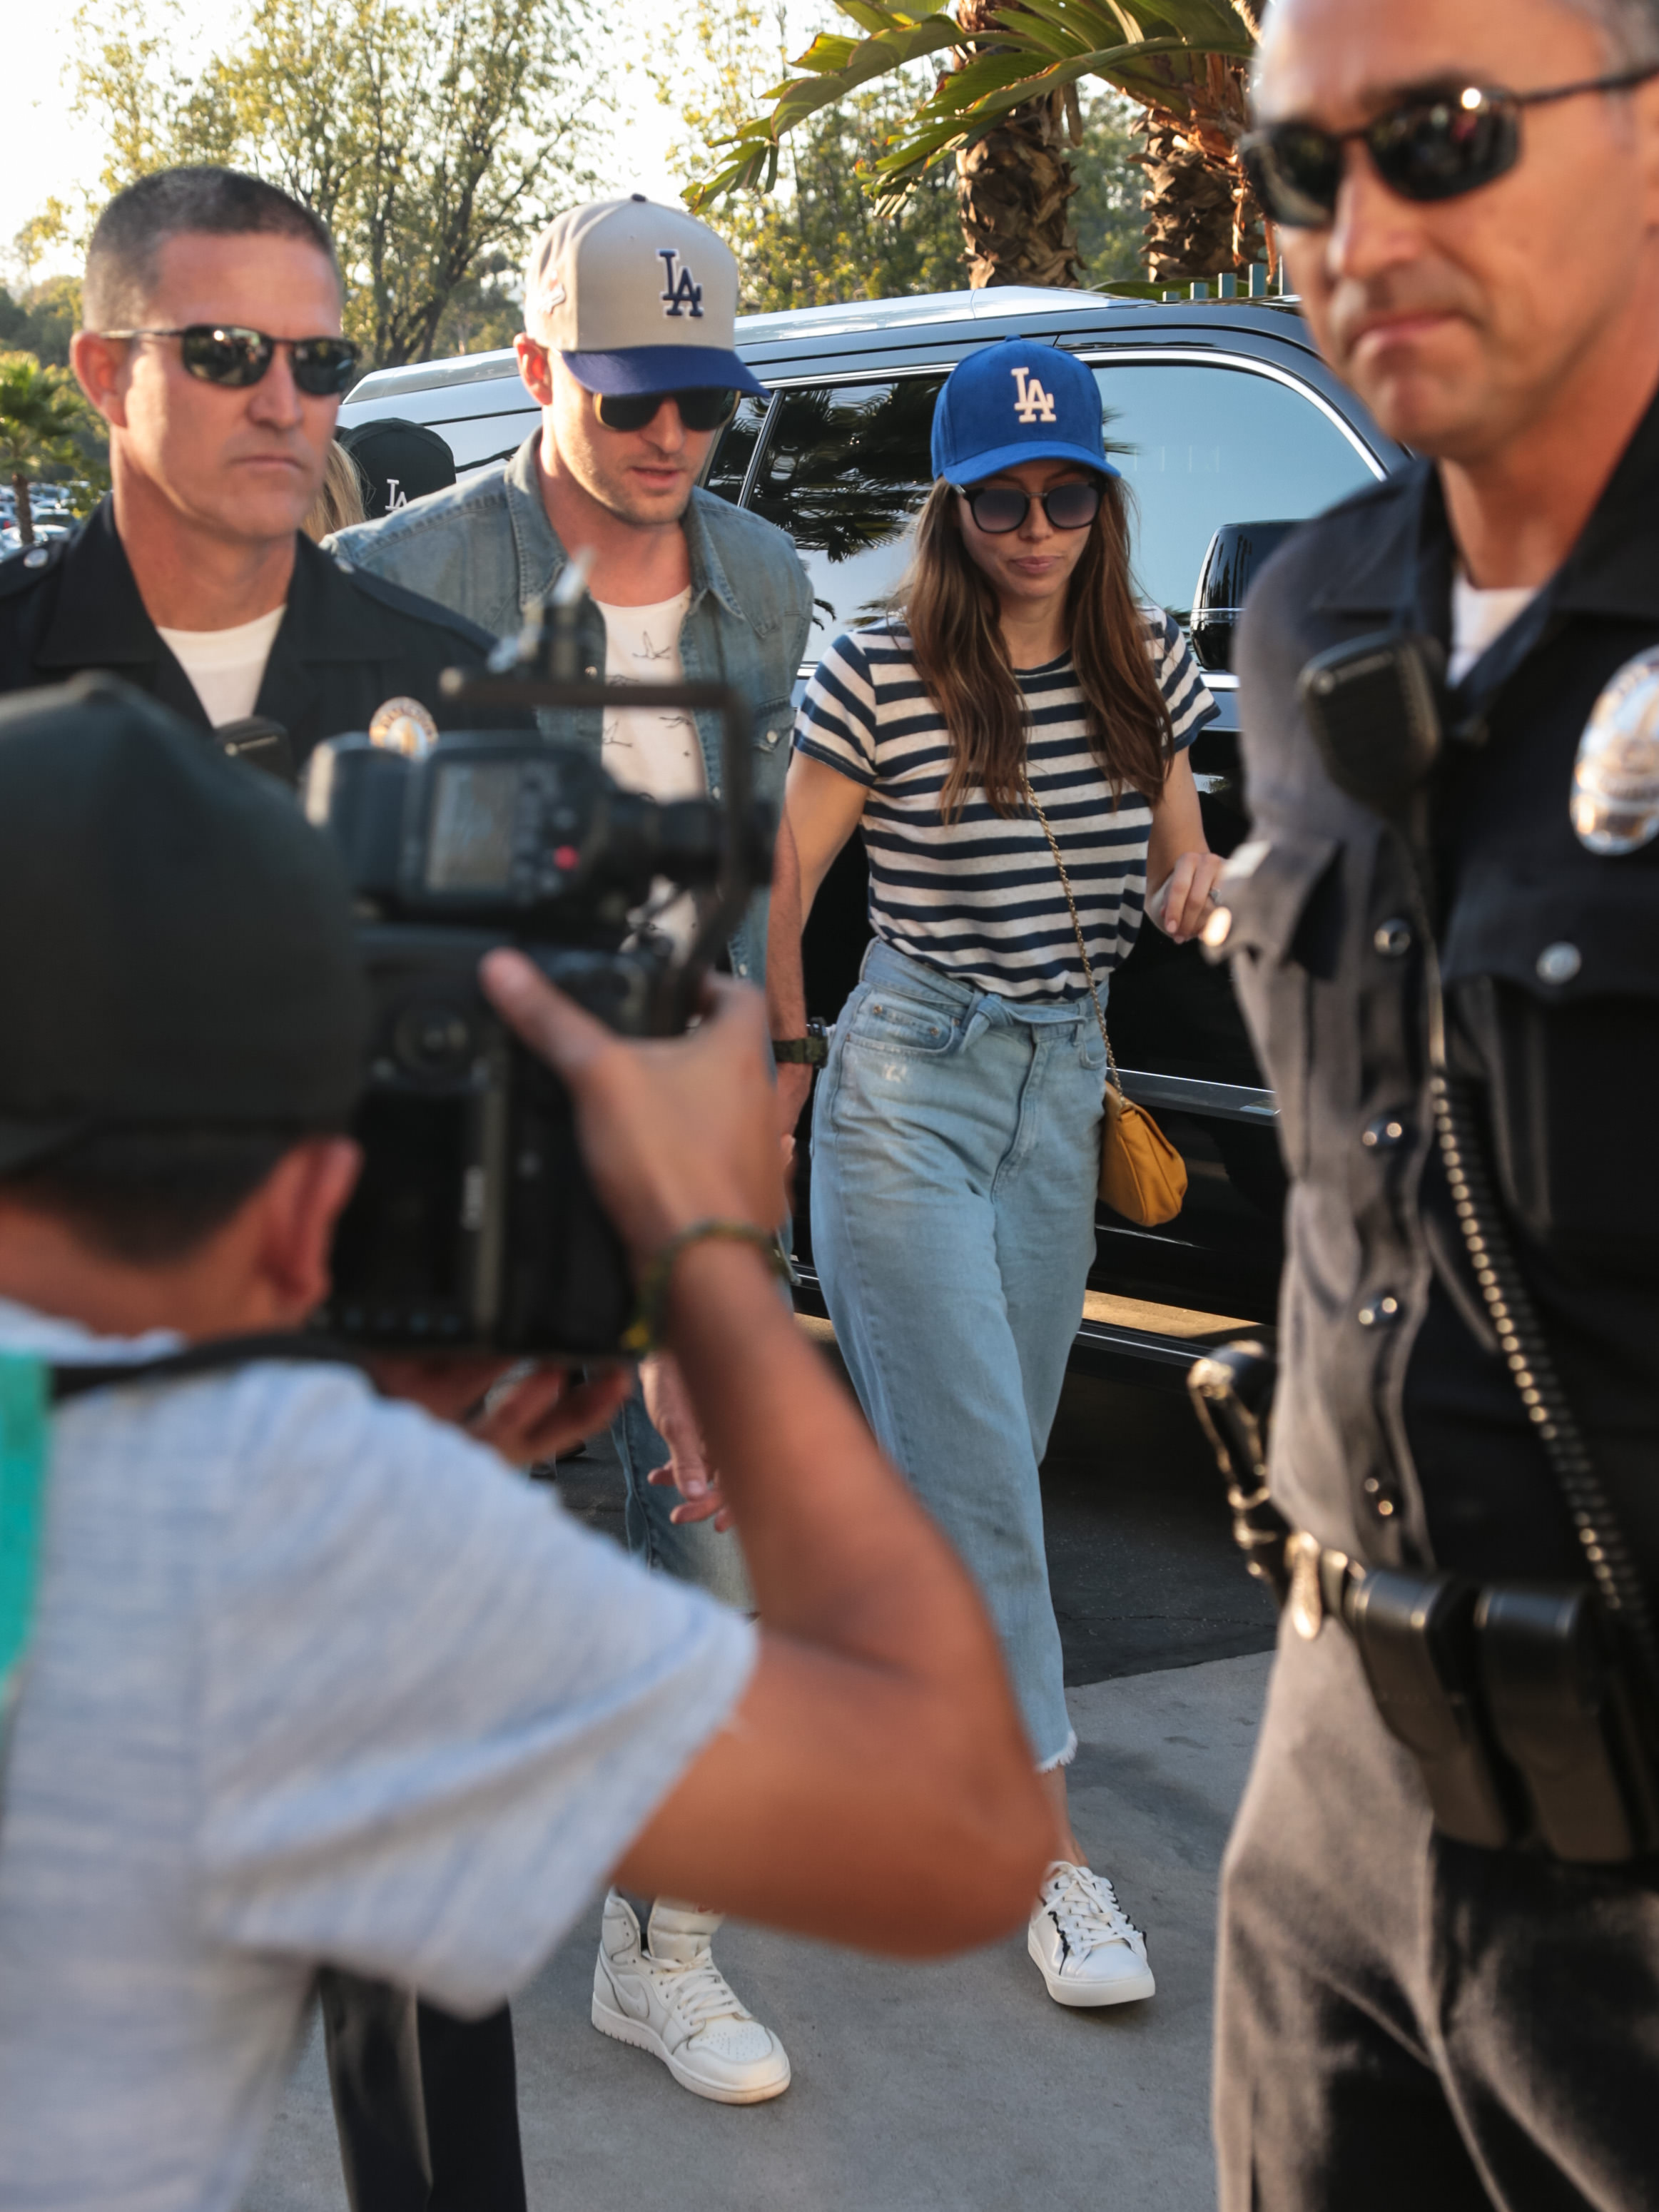 """<div class=""""meta image-caption""""><div class=""""origin-logo origin-image none""""><span>none</span></div><span class=""""caption-text"""">Justin Timberlake and Jessica Biel are seen arriving at game two of the World Series. (Getty Images)</span></div>"""